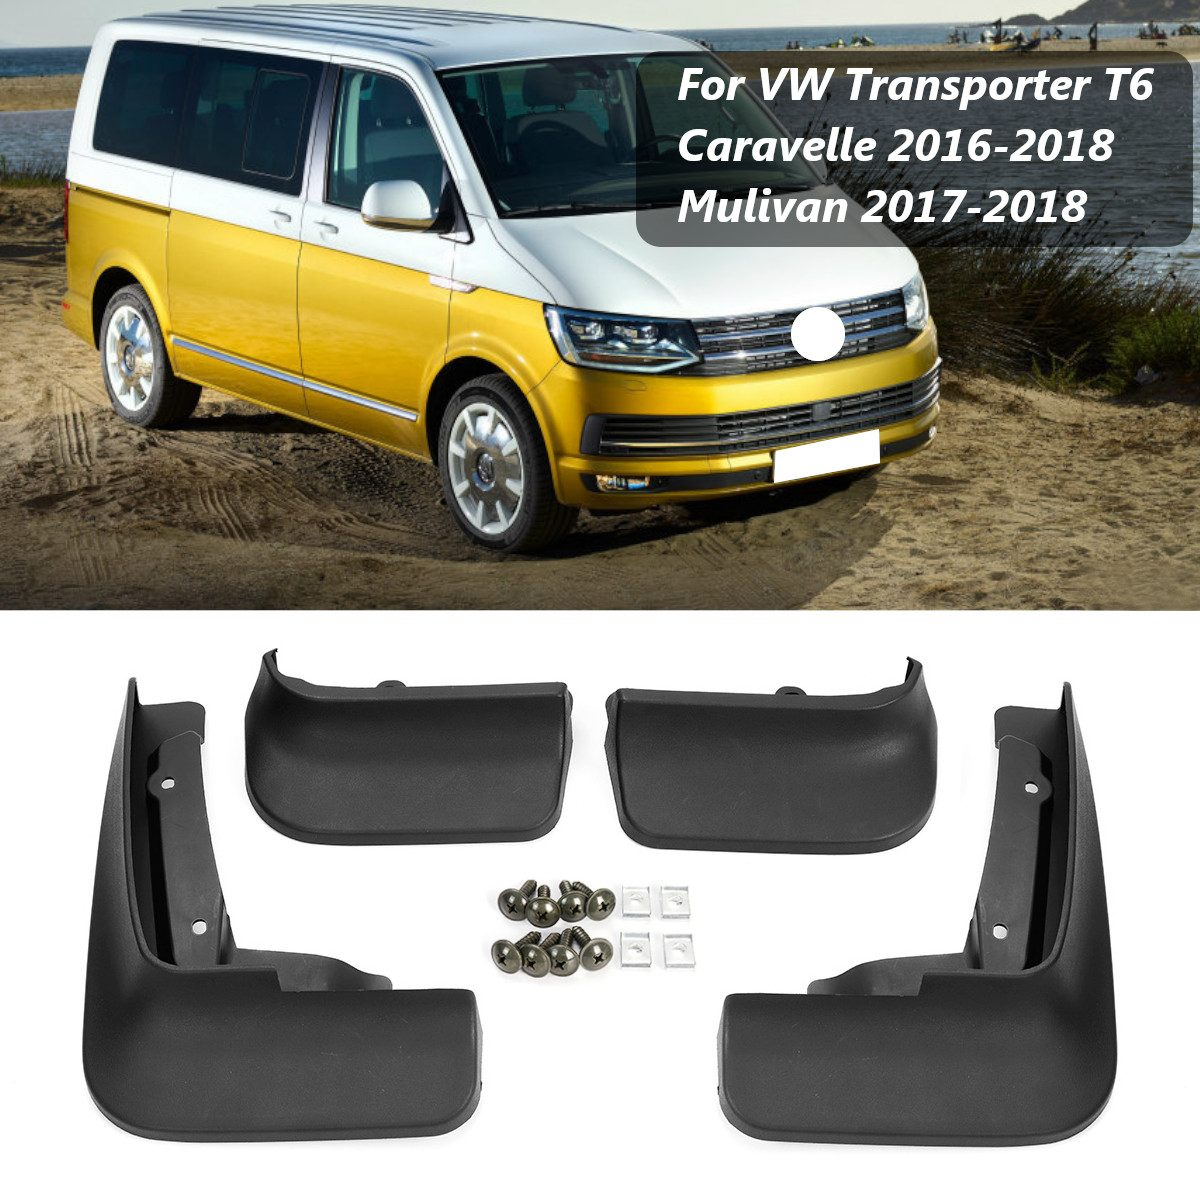 Car Mud Flaps Splash Guards for Fender Mudflaps Mudguards For VW Transporter T6 Caravelle 2016 2017 2018 Mulivan 2017 2018-in Mudguards from Automobiles & Motorcycles